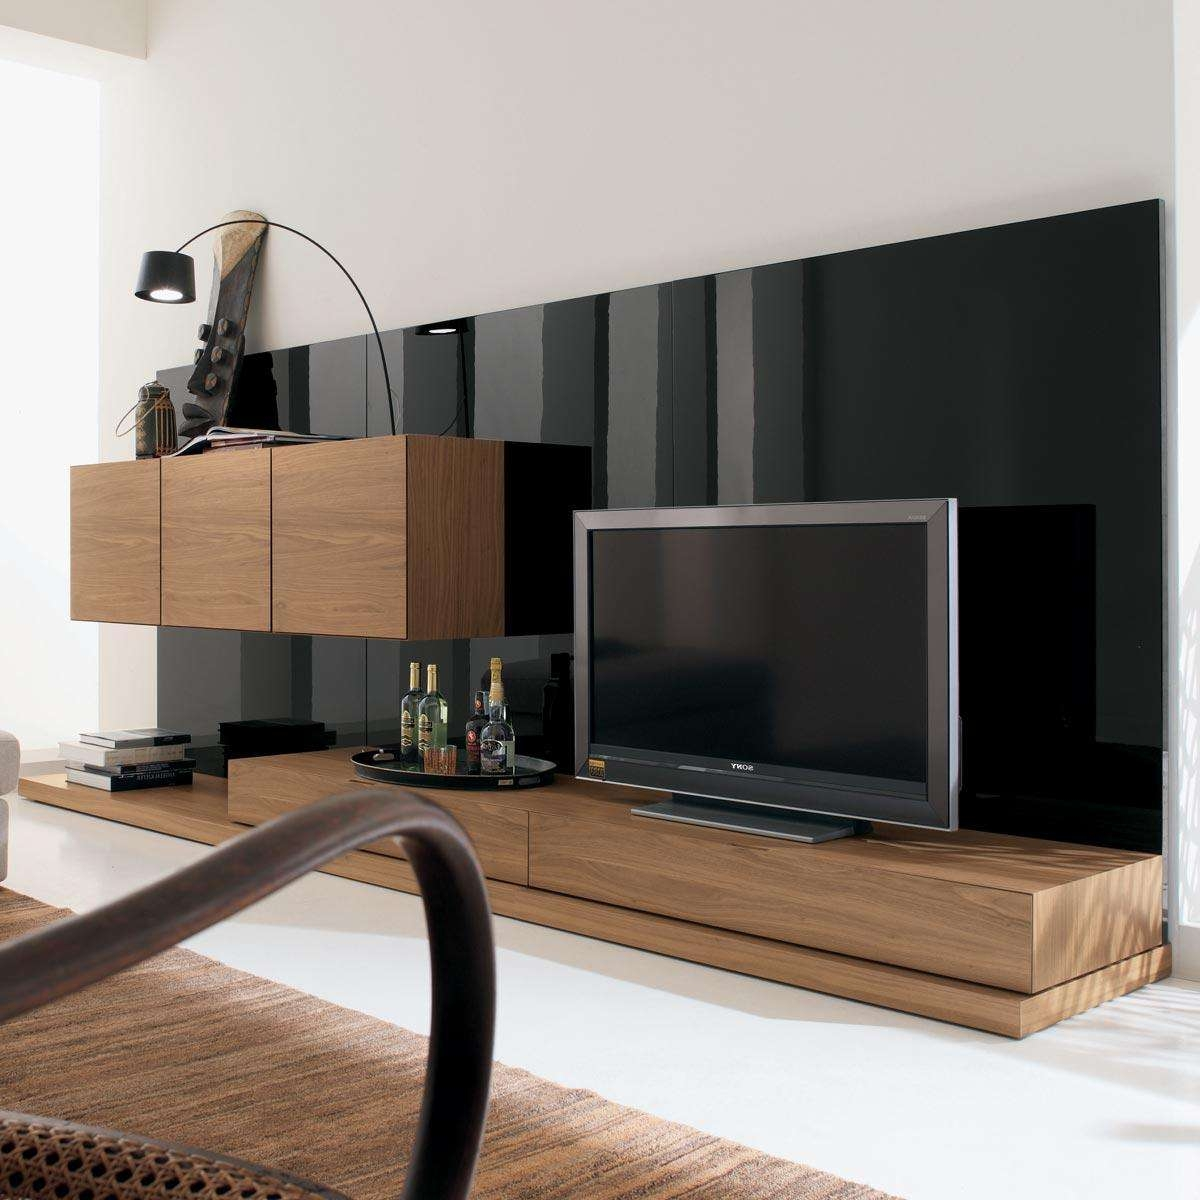 Modern Nature Wood Big Screen Tv Stand Wall Mounted Living Room Throughout Sleek Tv Stands (View 8 of 15)